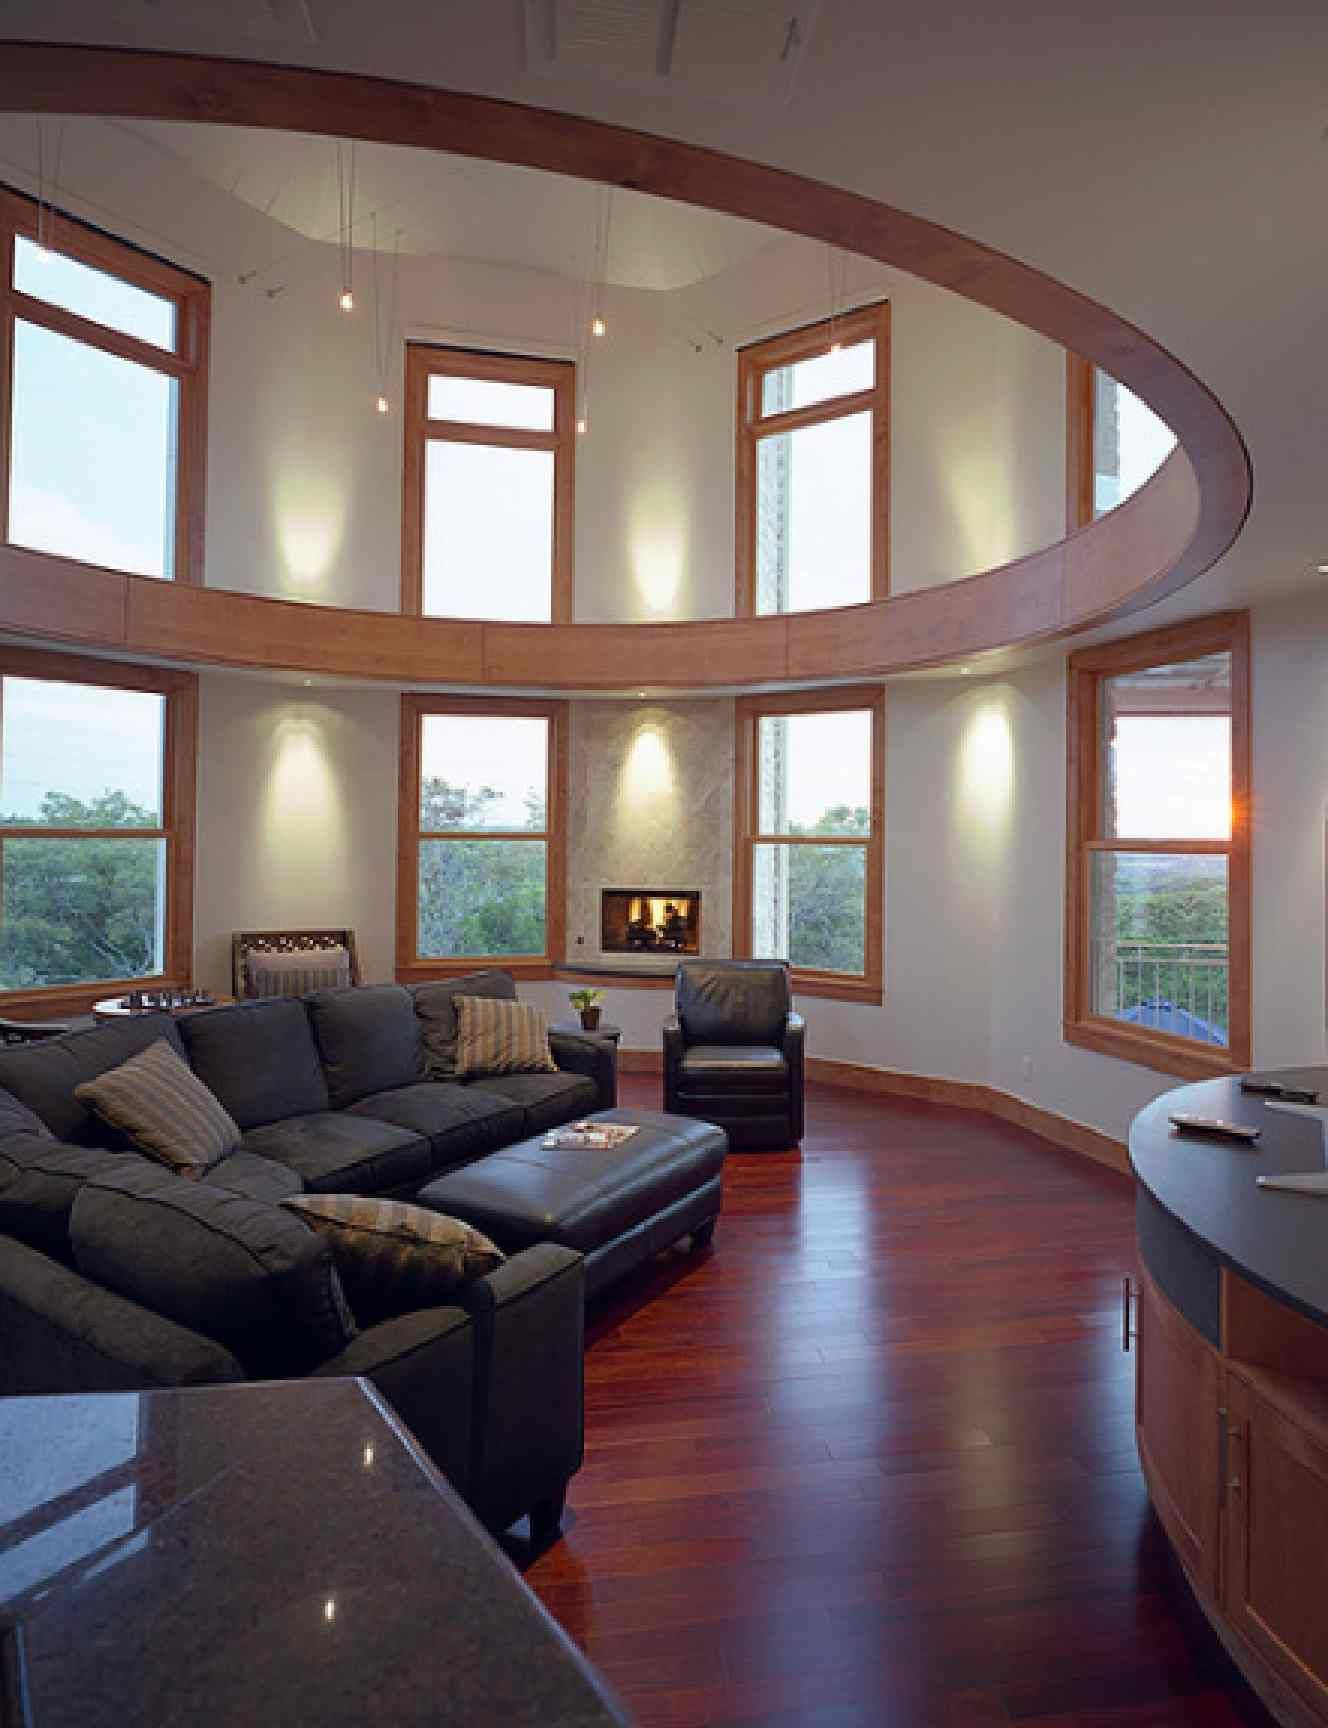 Modern living room with circular ceiling